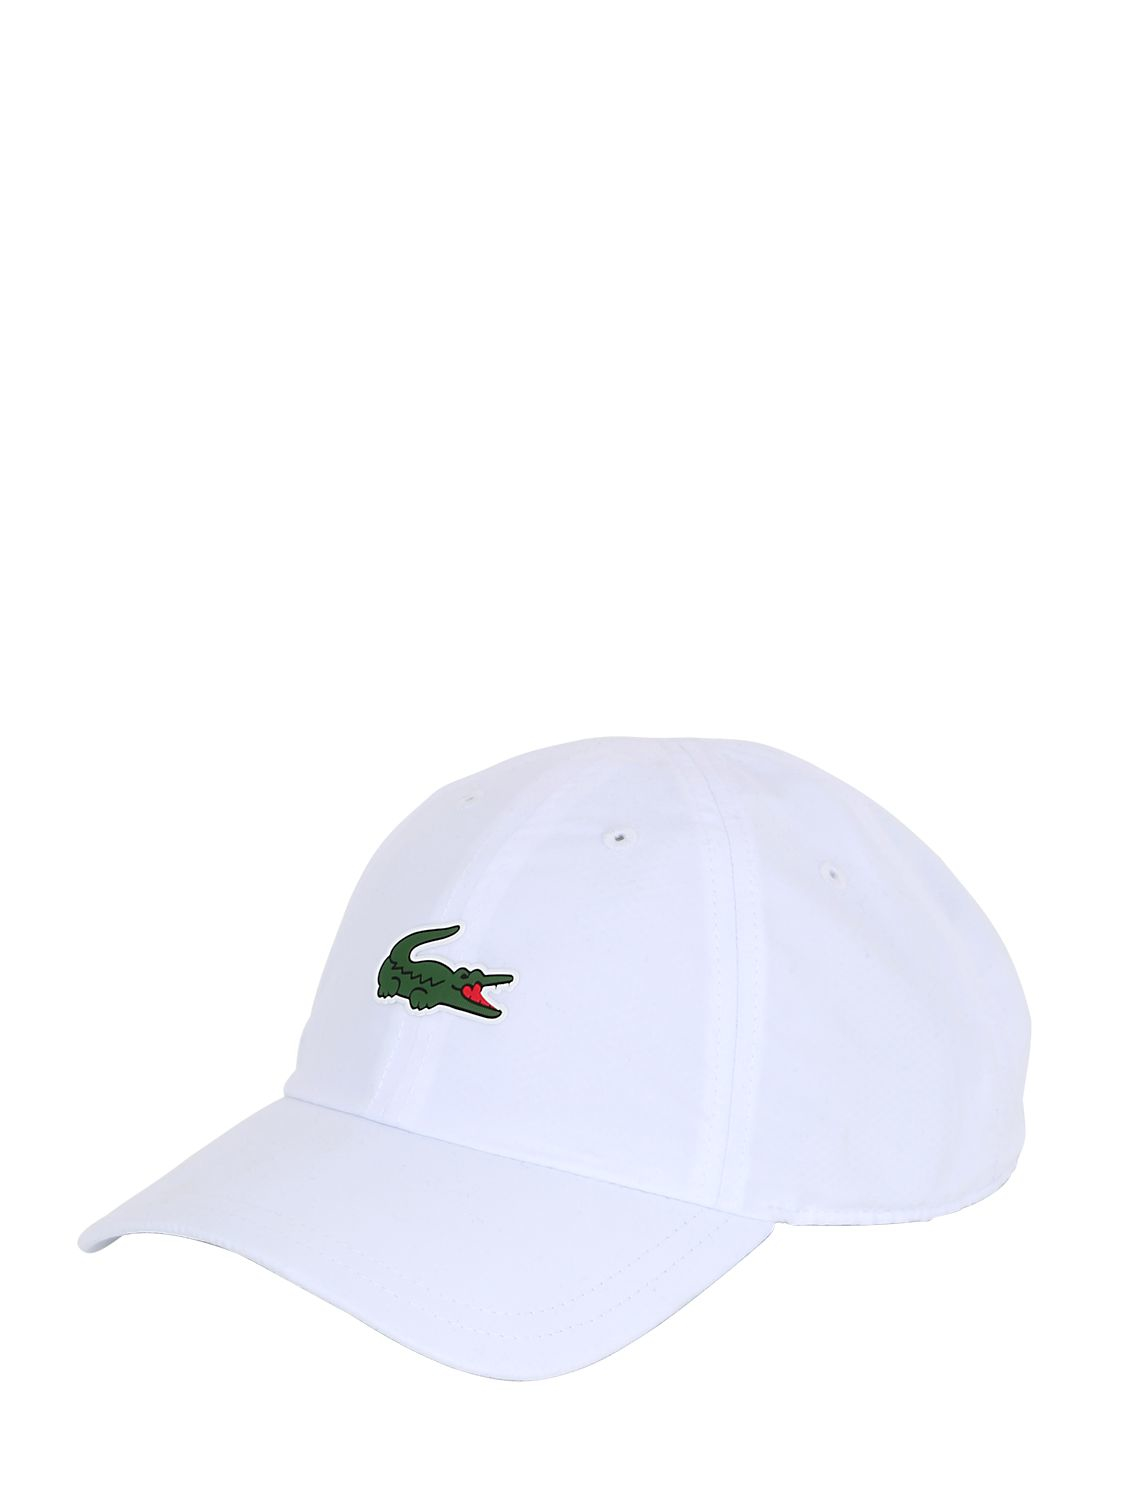 Lacoste Microfiber Tennis Hat in White for Men - Lyst 140f0893444